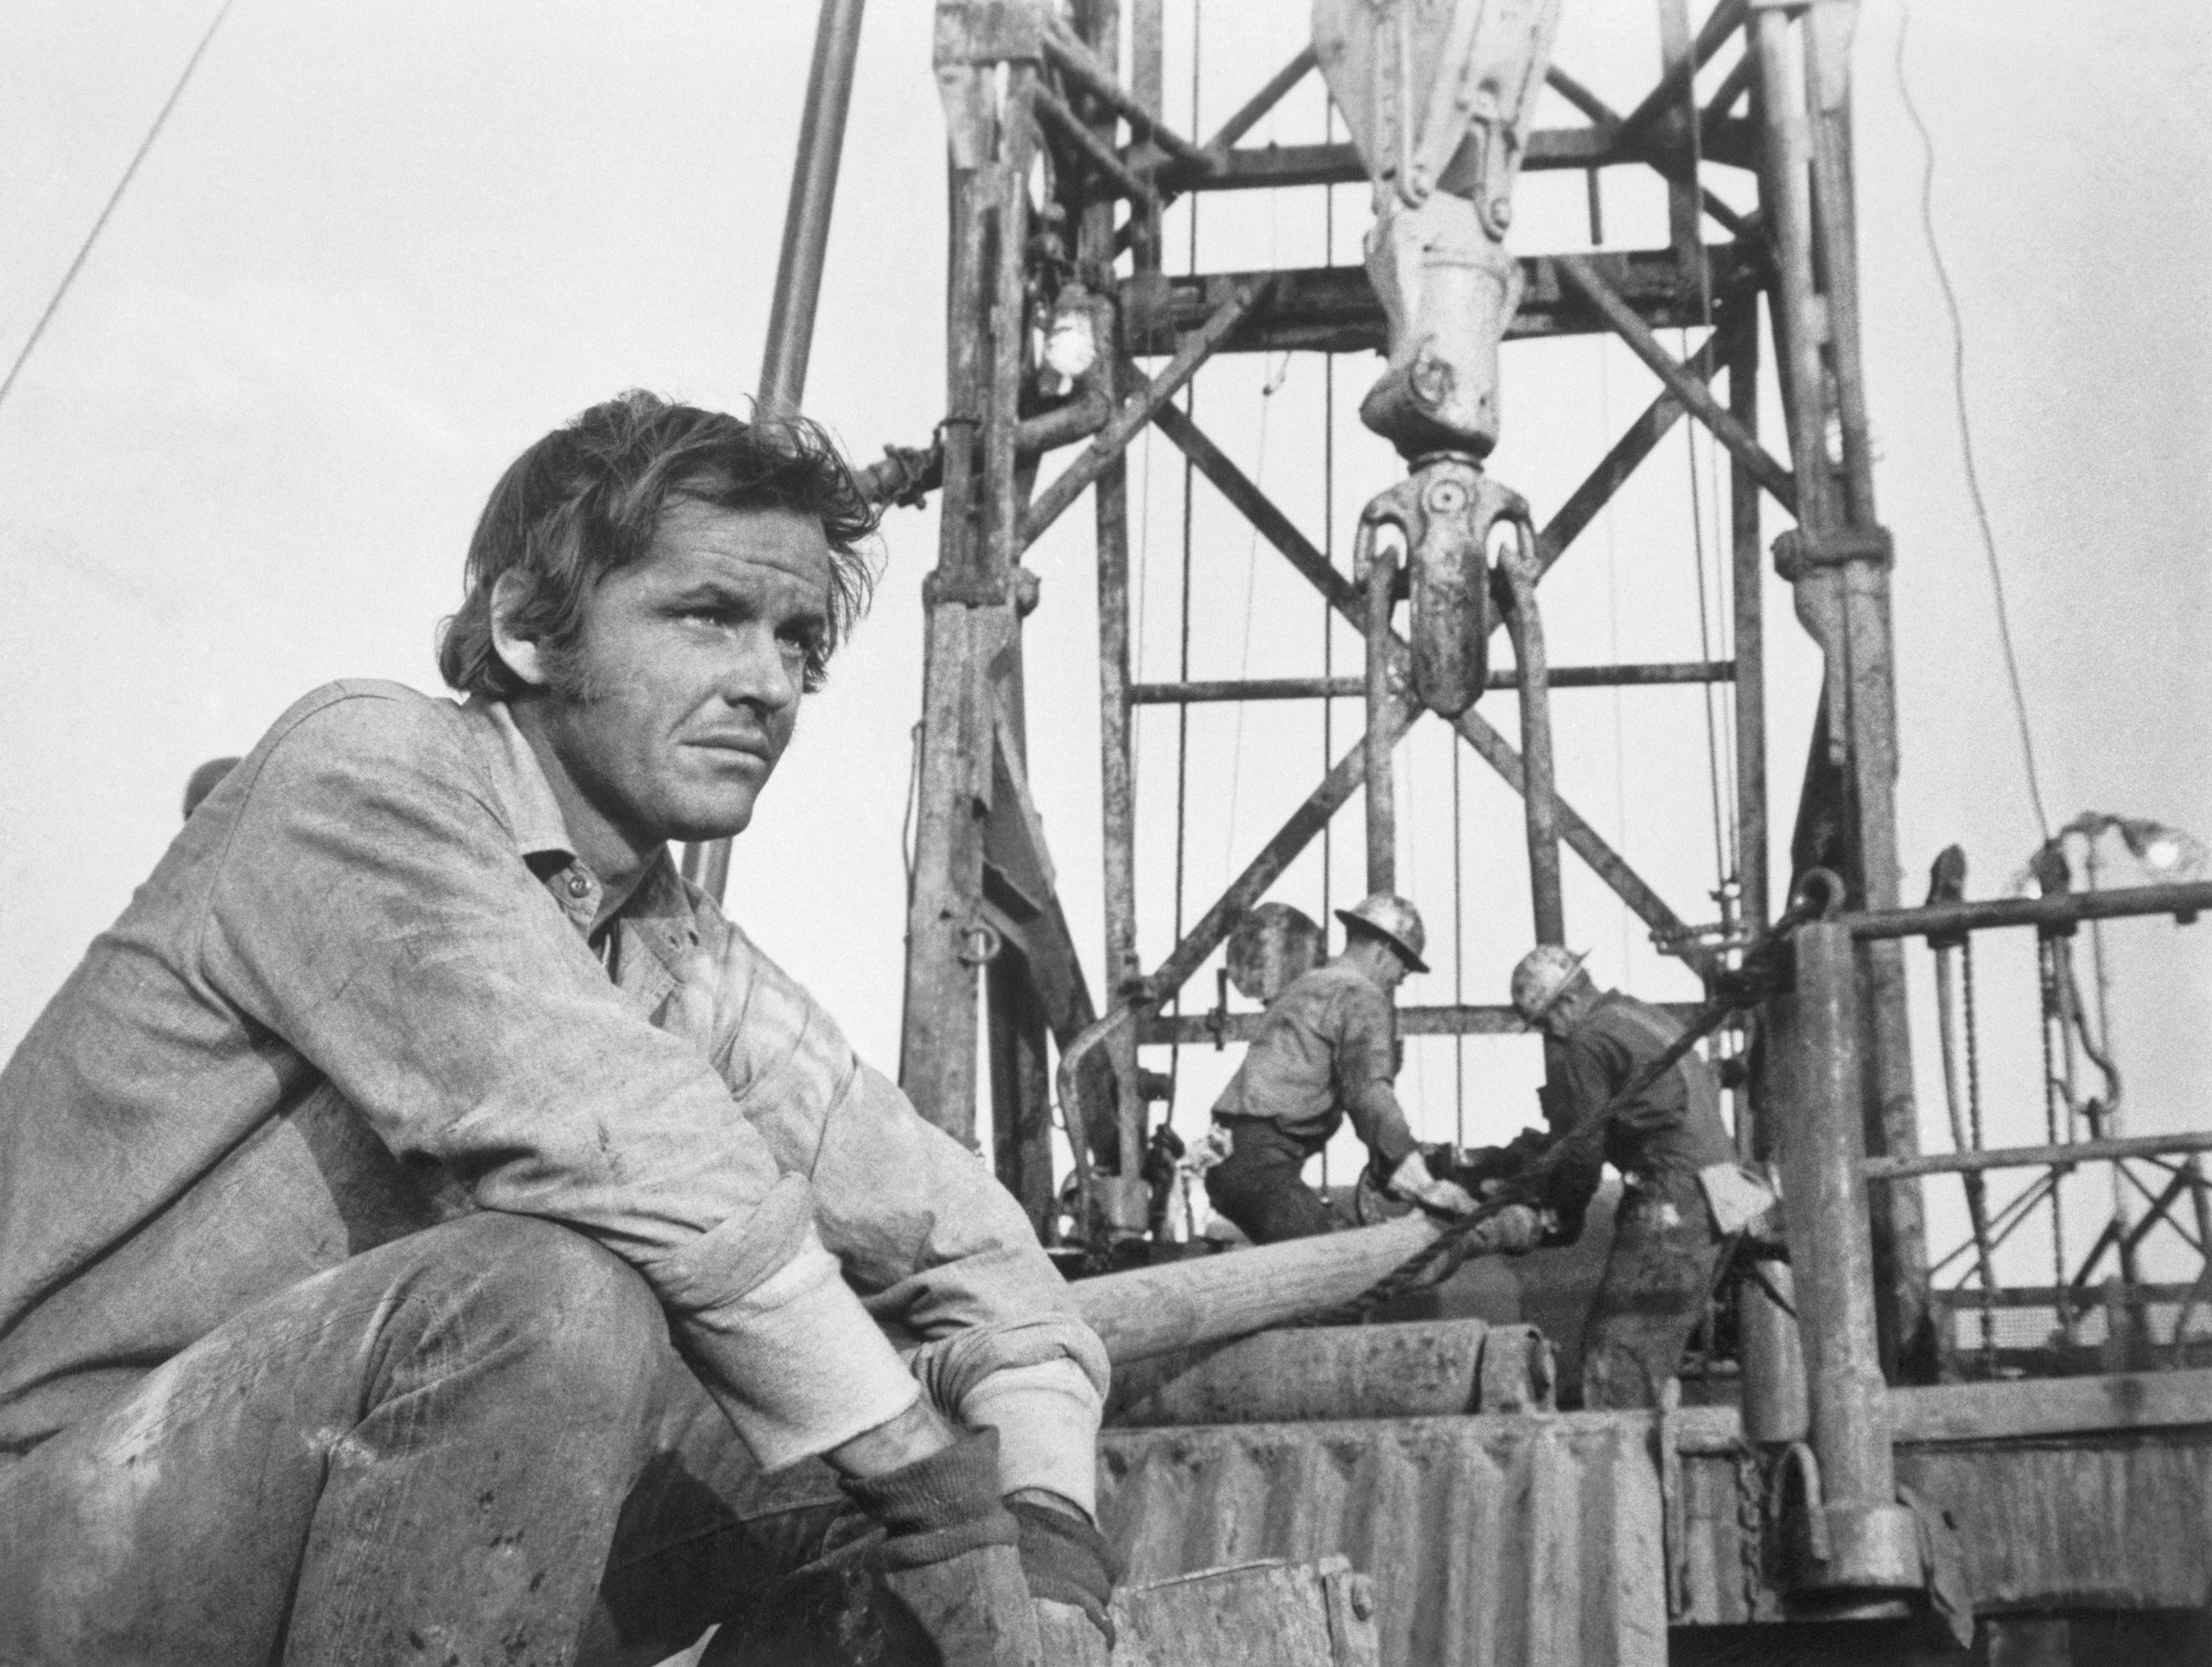 Nicholson in Five Easy Pieces .